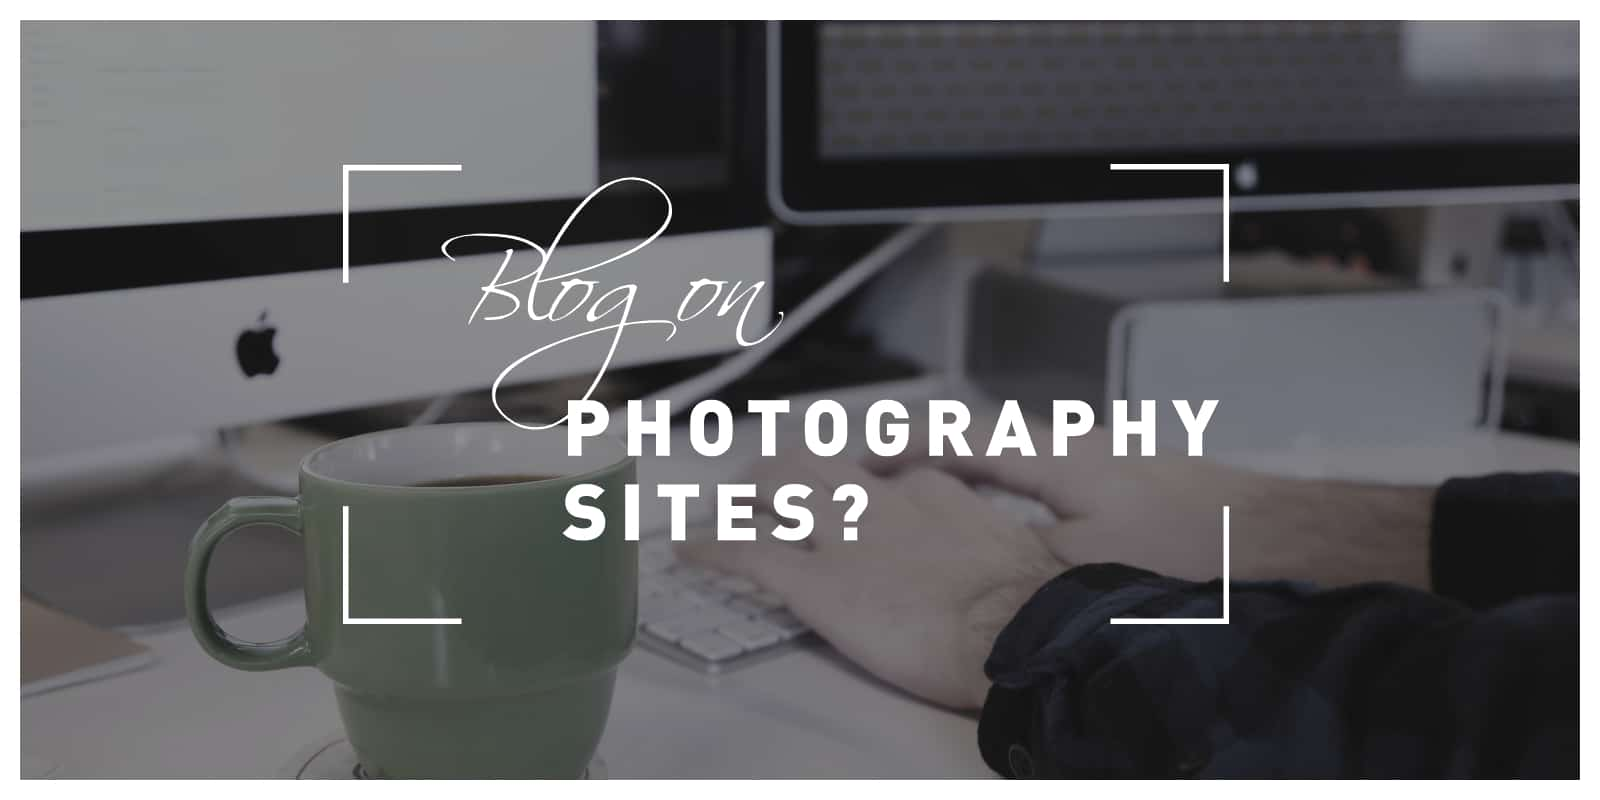 Blog on Photography Sites